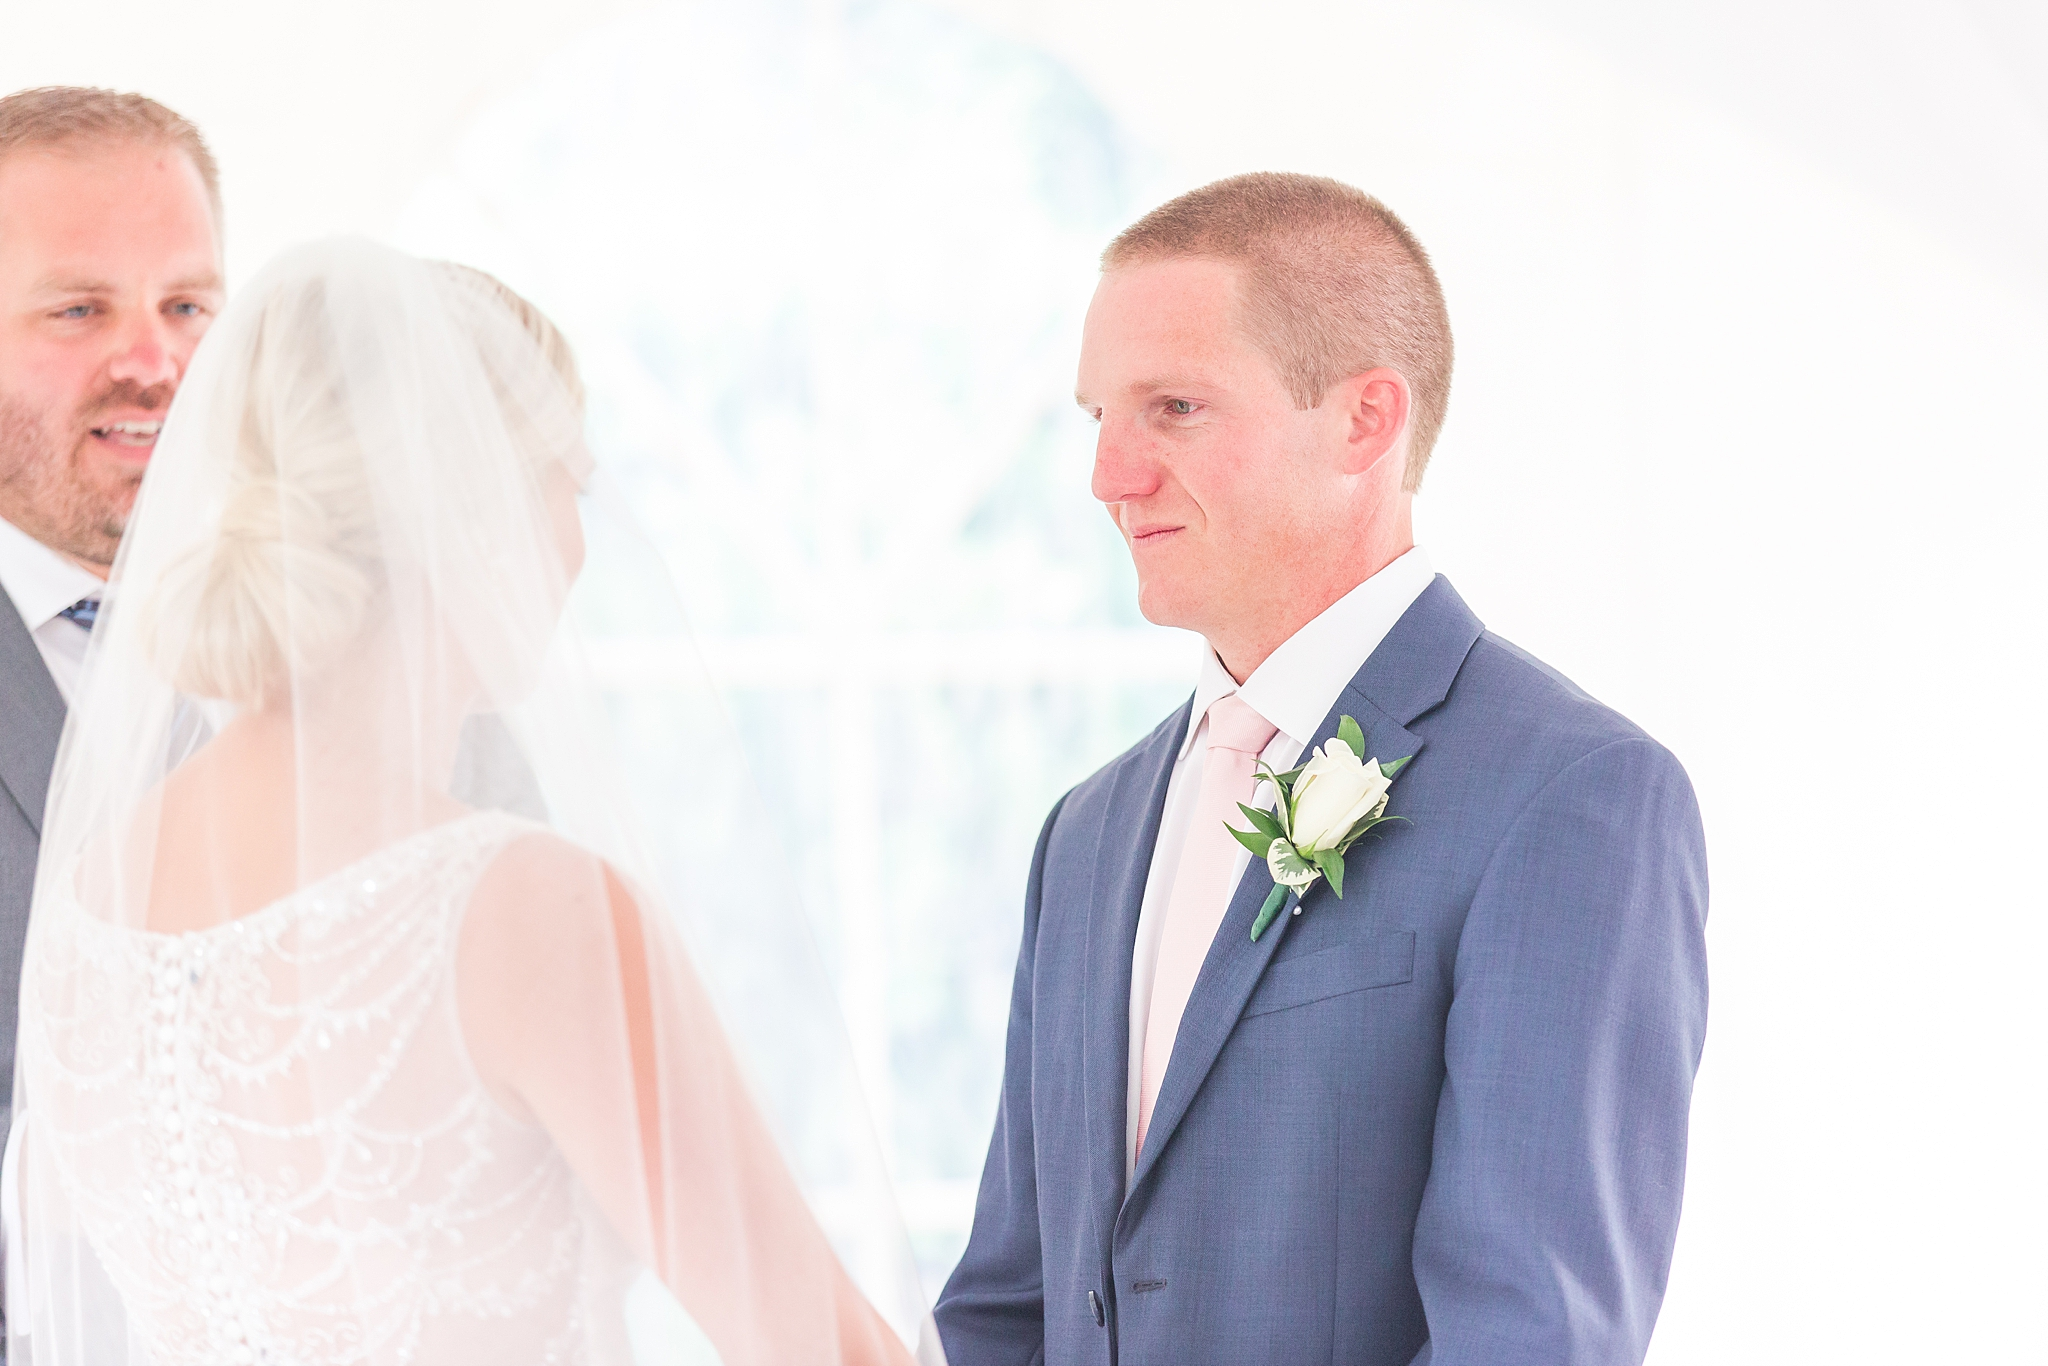 chapman-house-casually-chic-wedding-photography-in-rochester-michigan-by-courtney-carolyn-photography_0037.jpg